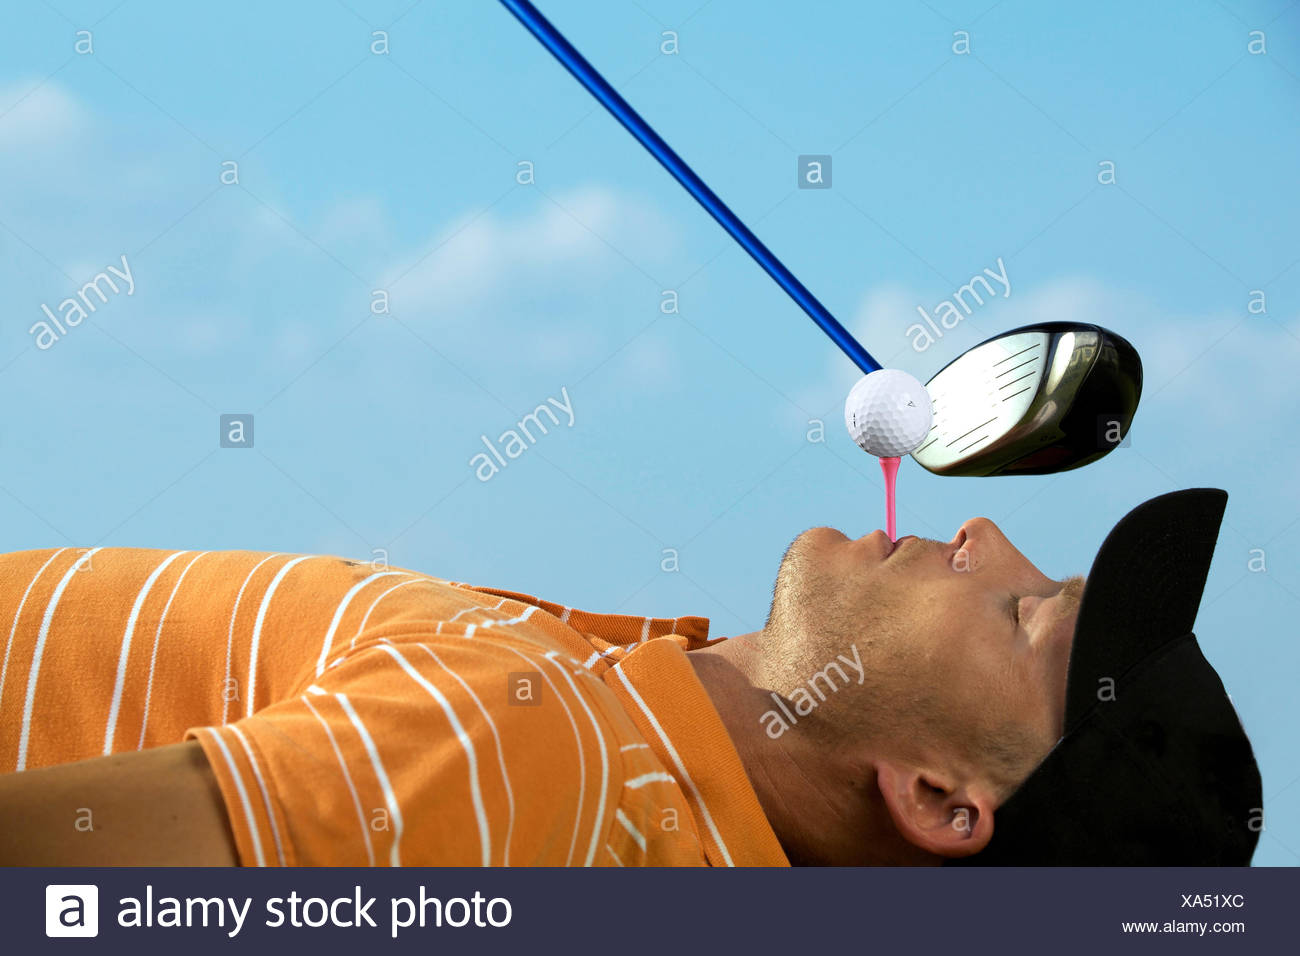 Man balancing golf ball on tee in his mouth - Stock Image